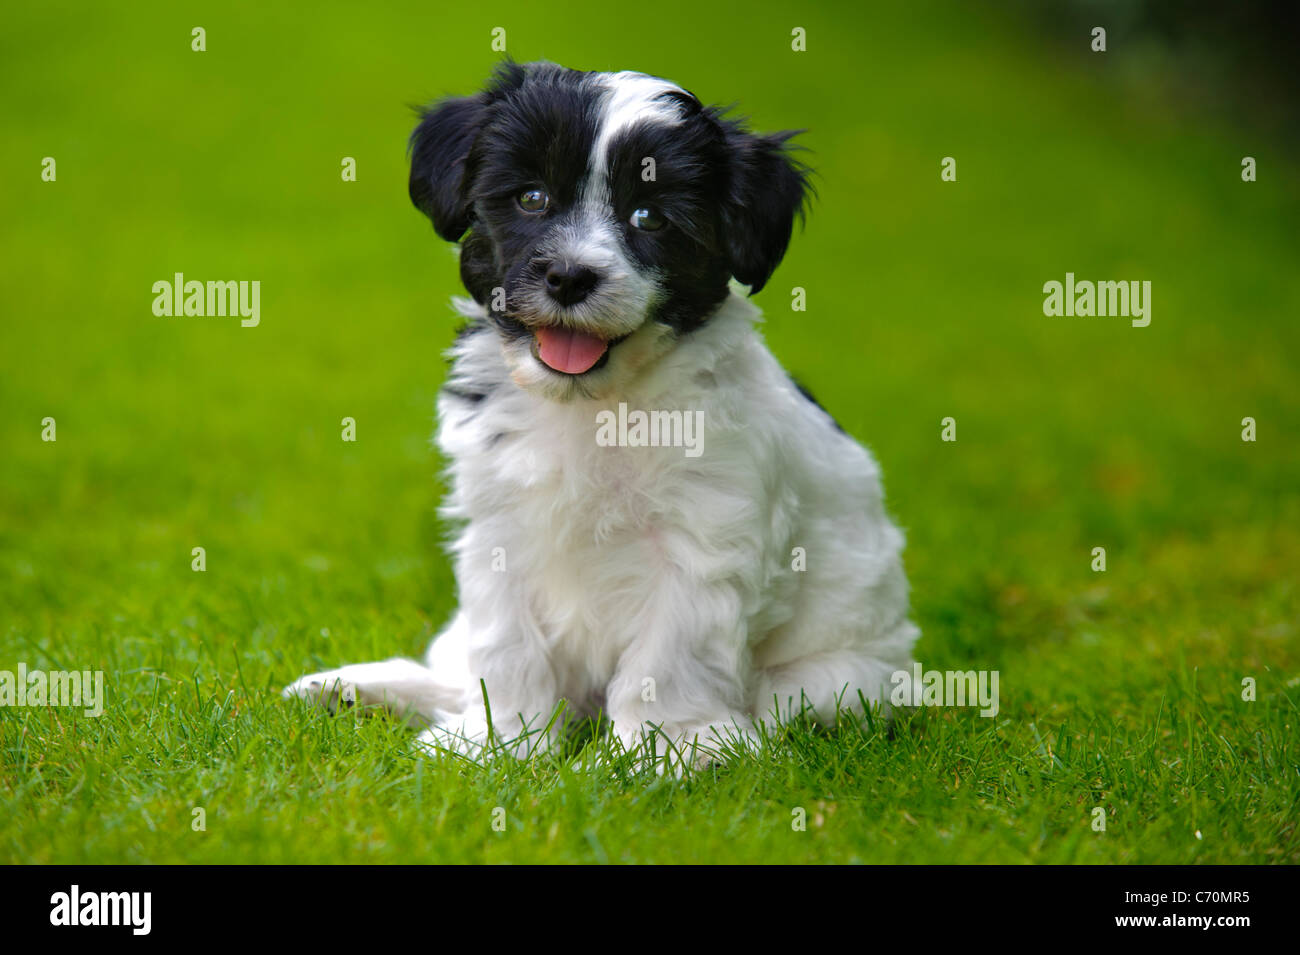 puppy dog havaneser Stock Photo